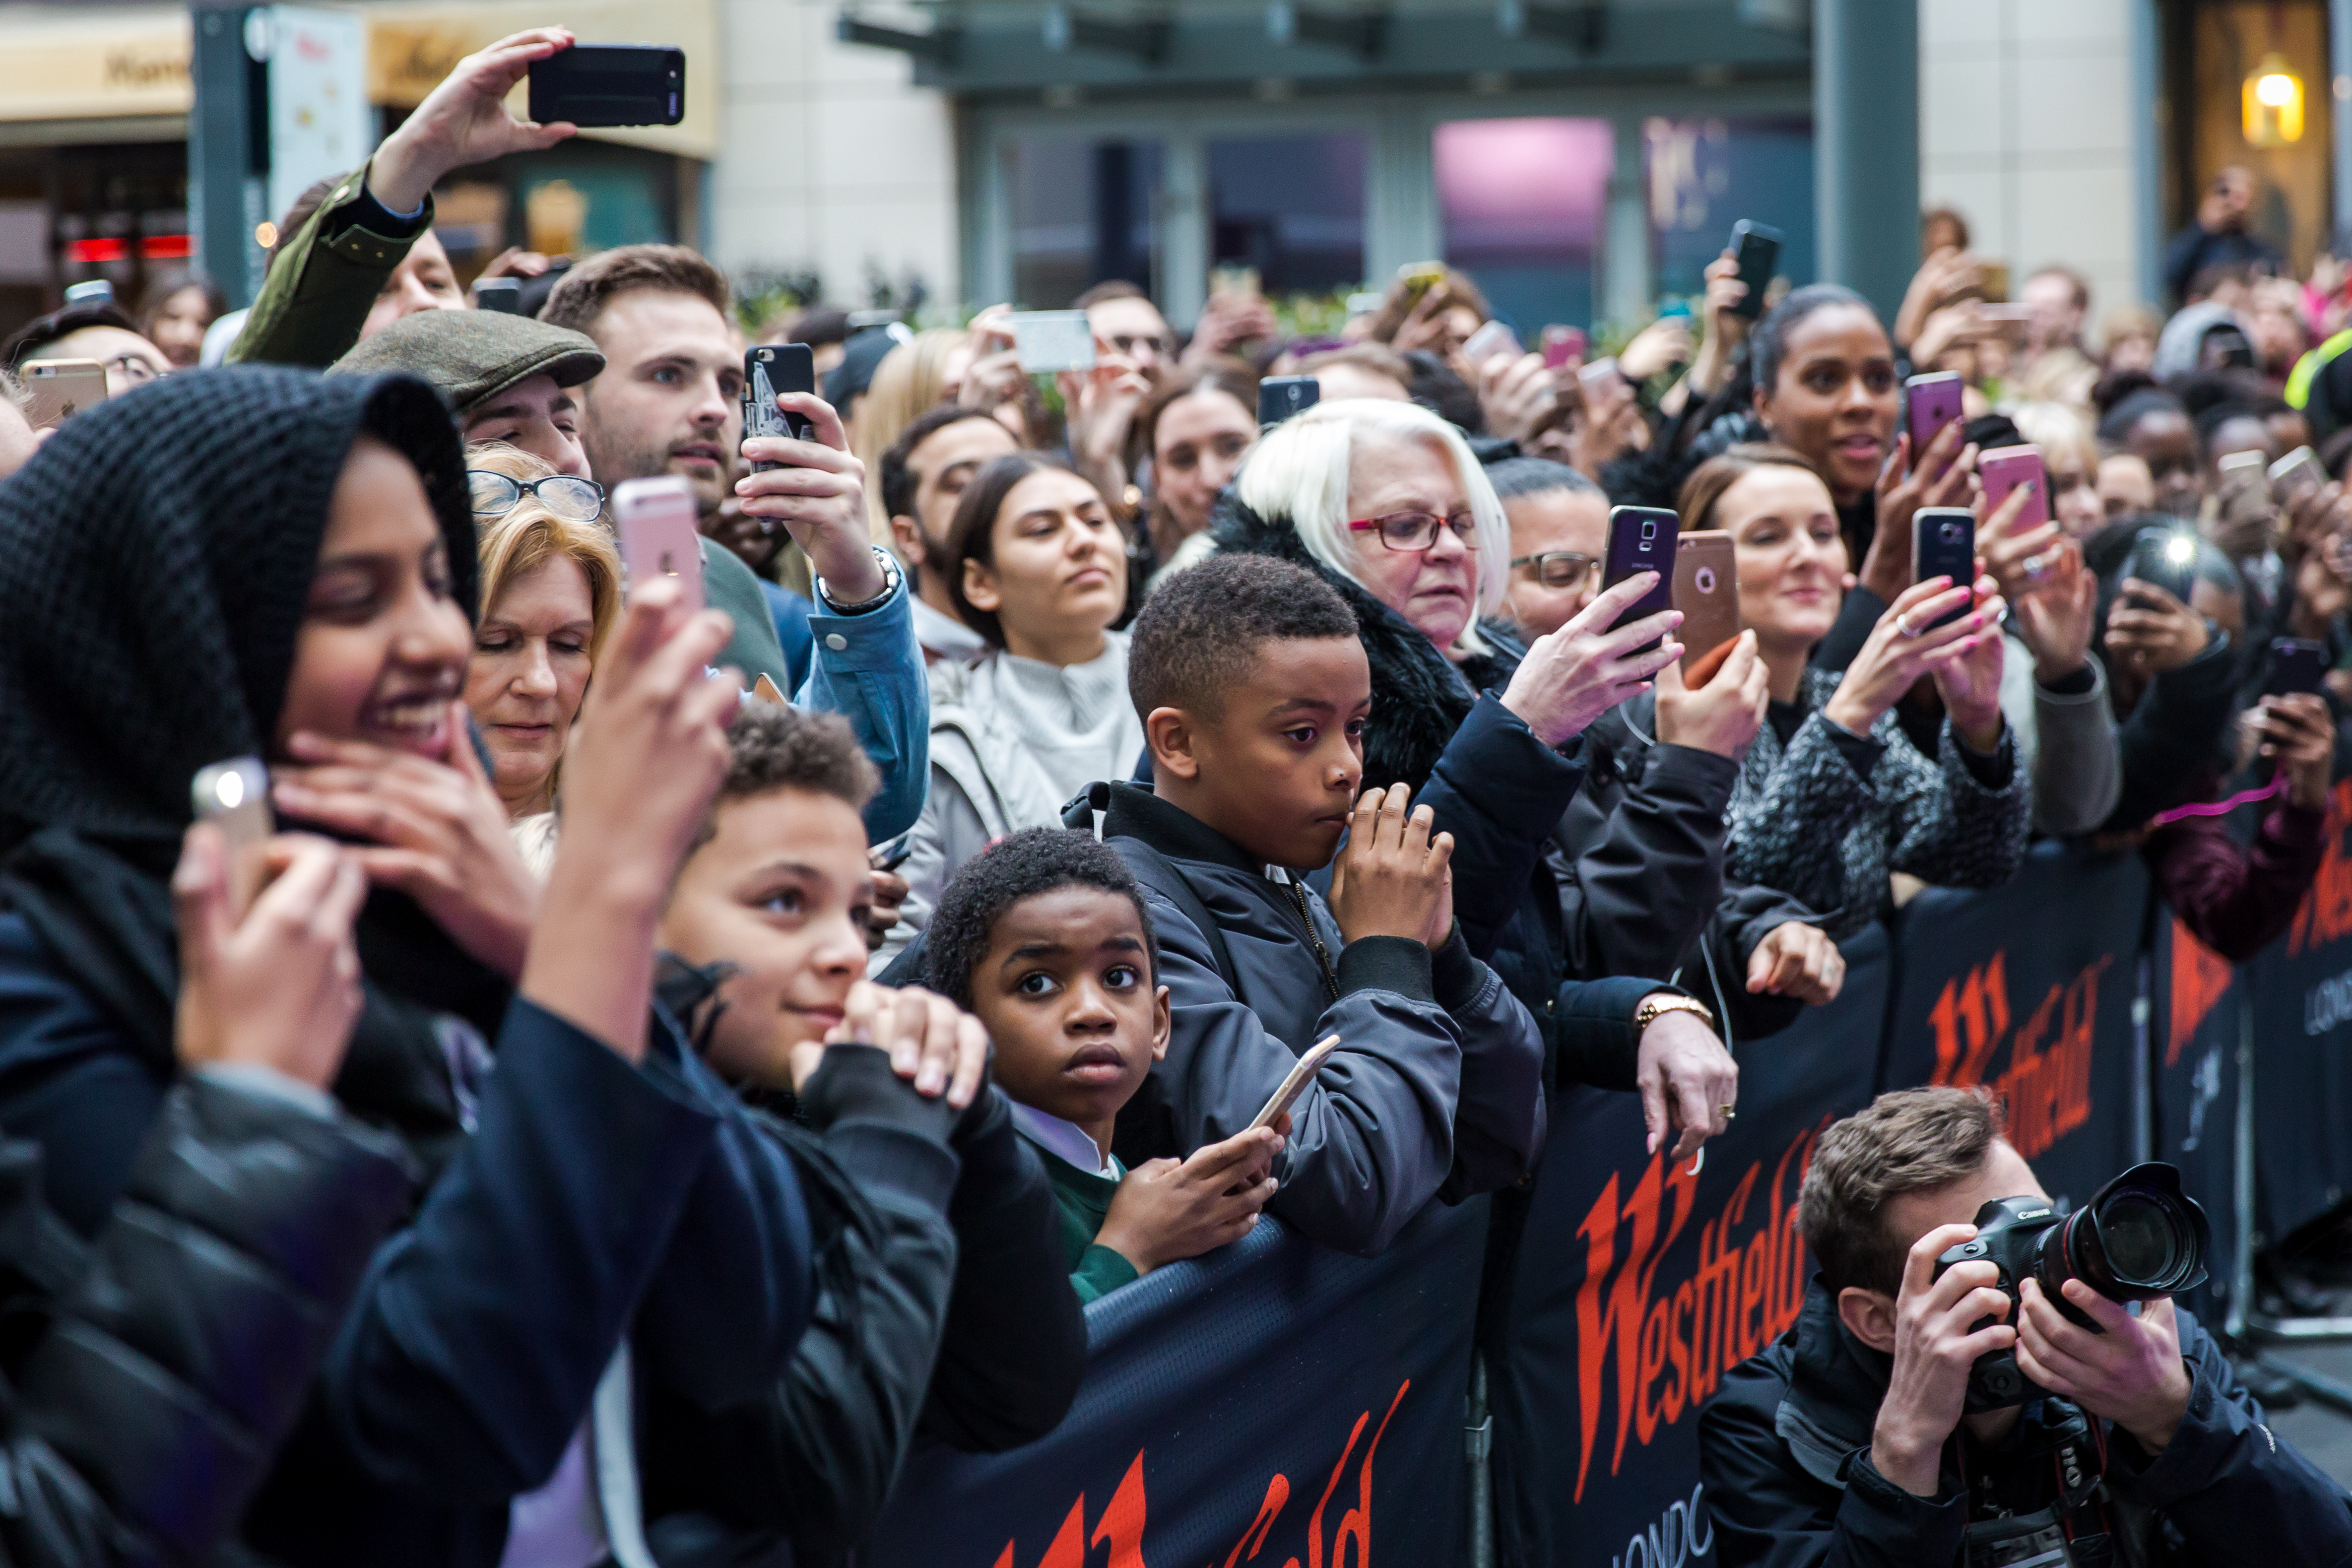 Fans at Stormzy's surprise show at Westfield White